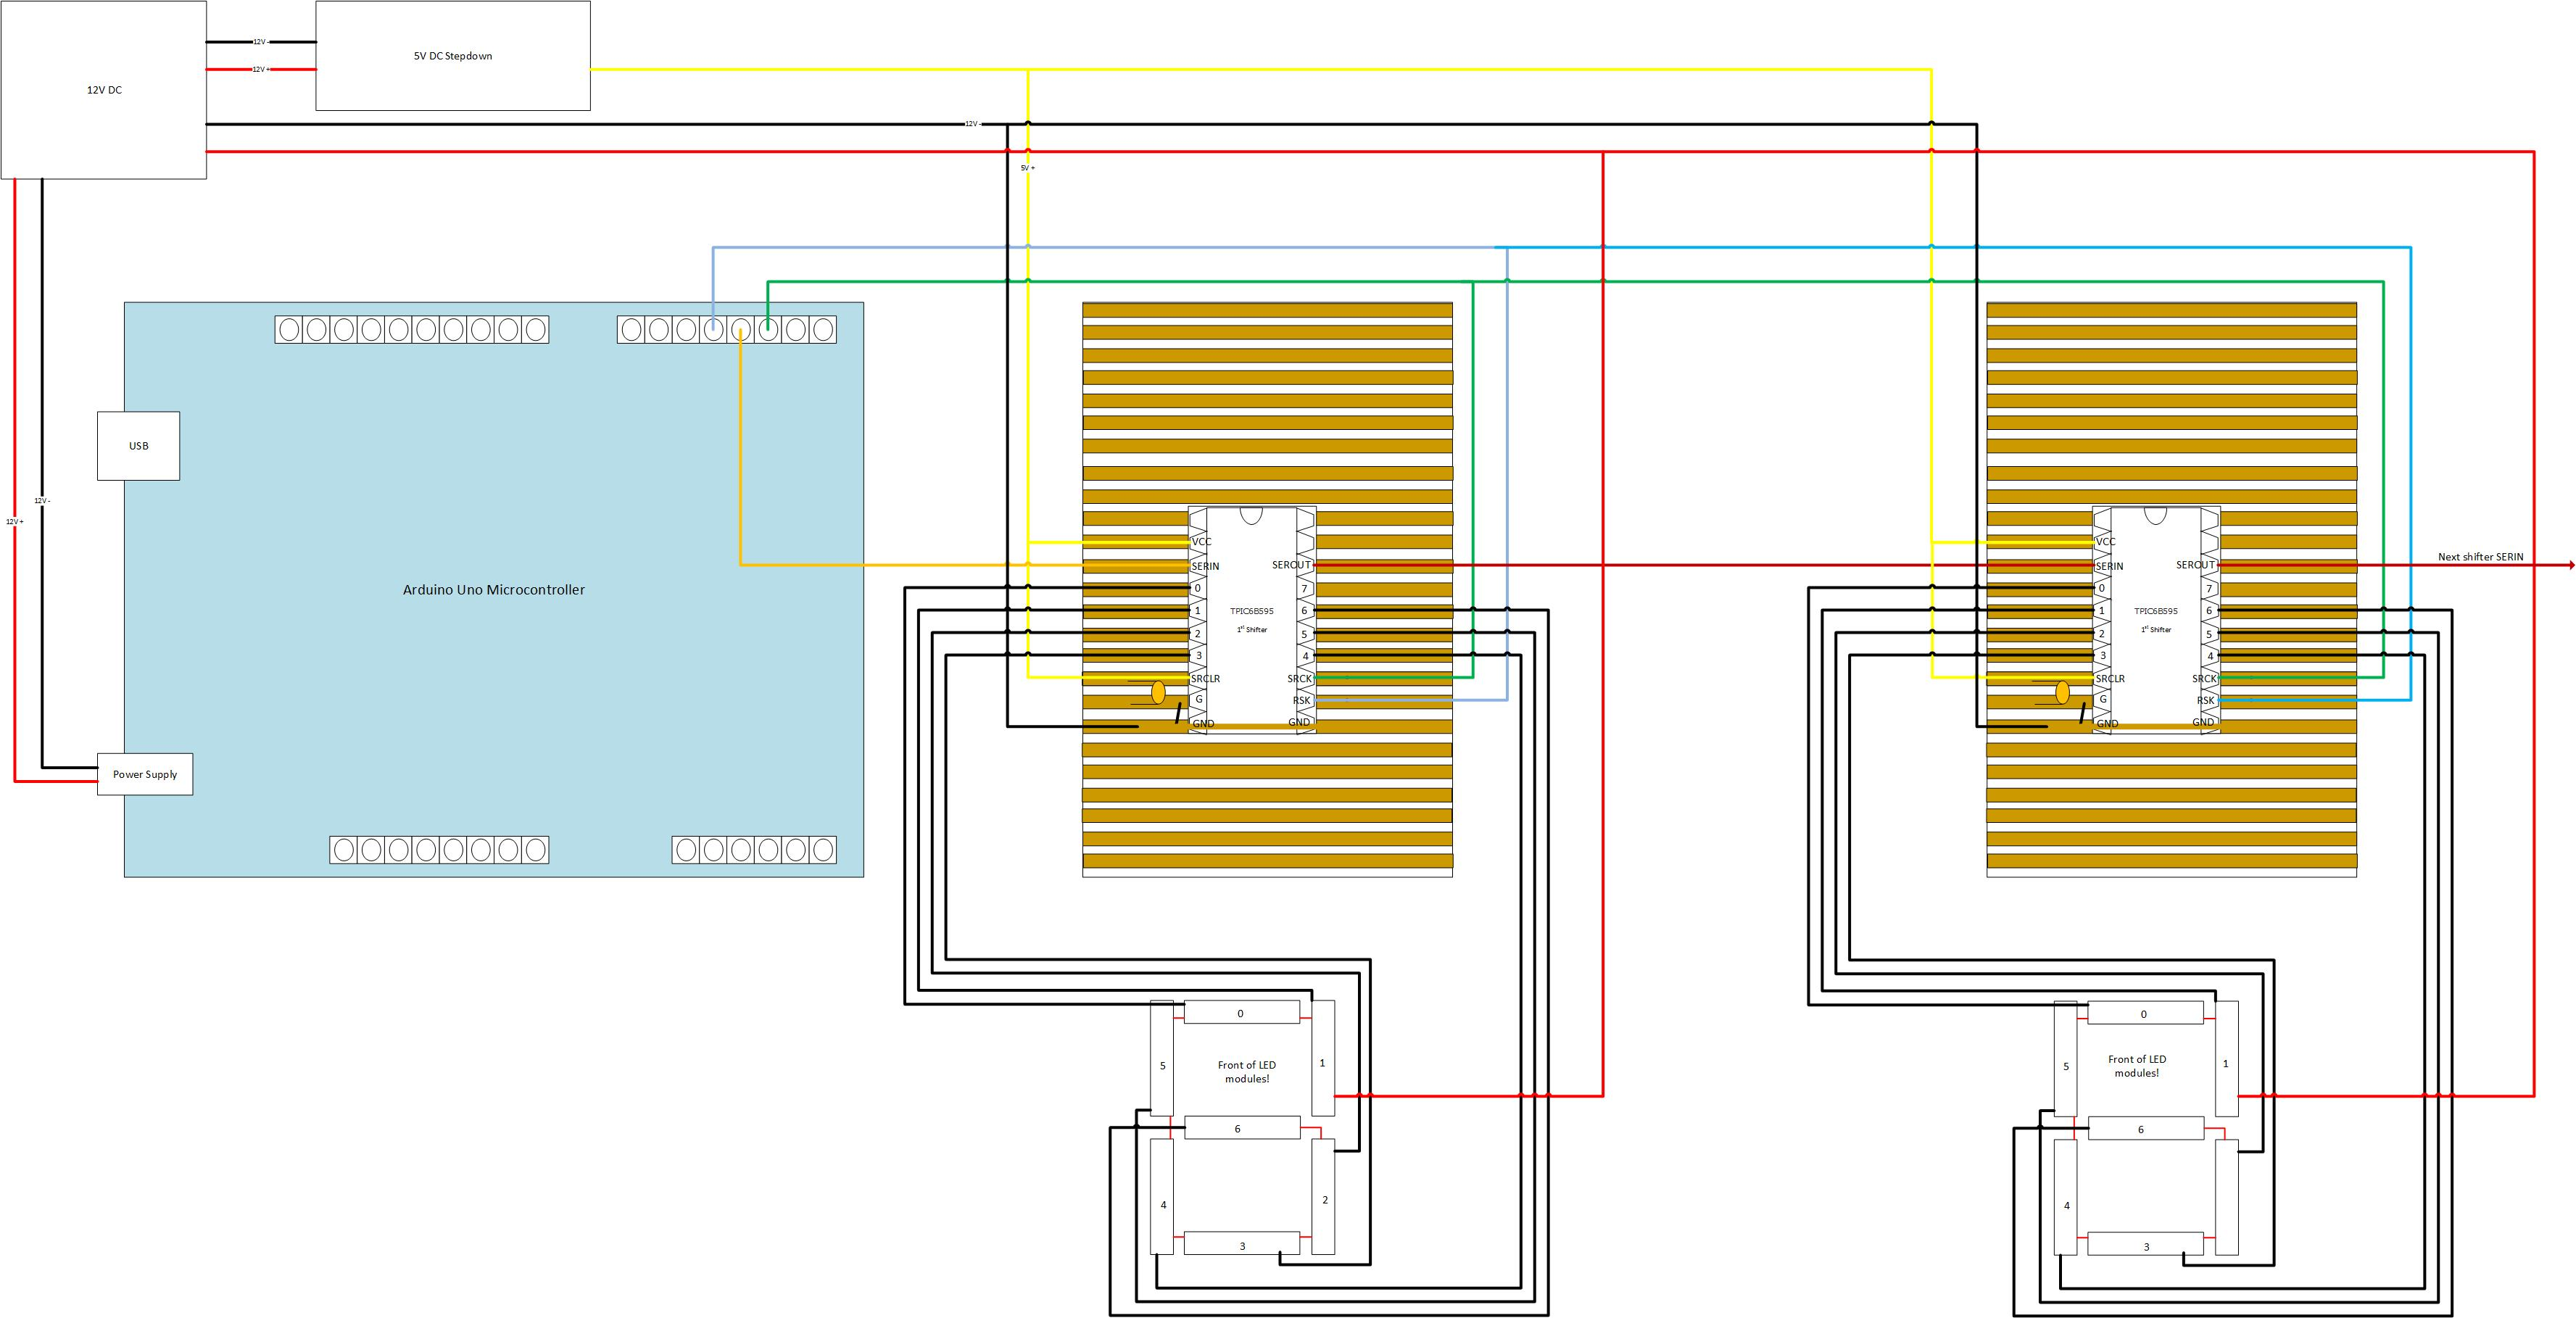 12v Led Module Wiring Diagram Diagrams Creating And Testing The Electronics Build Your Own Scoreboard Homes